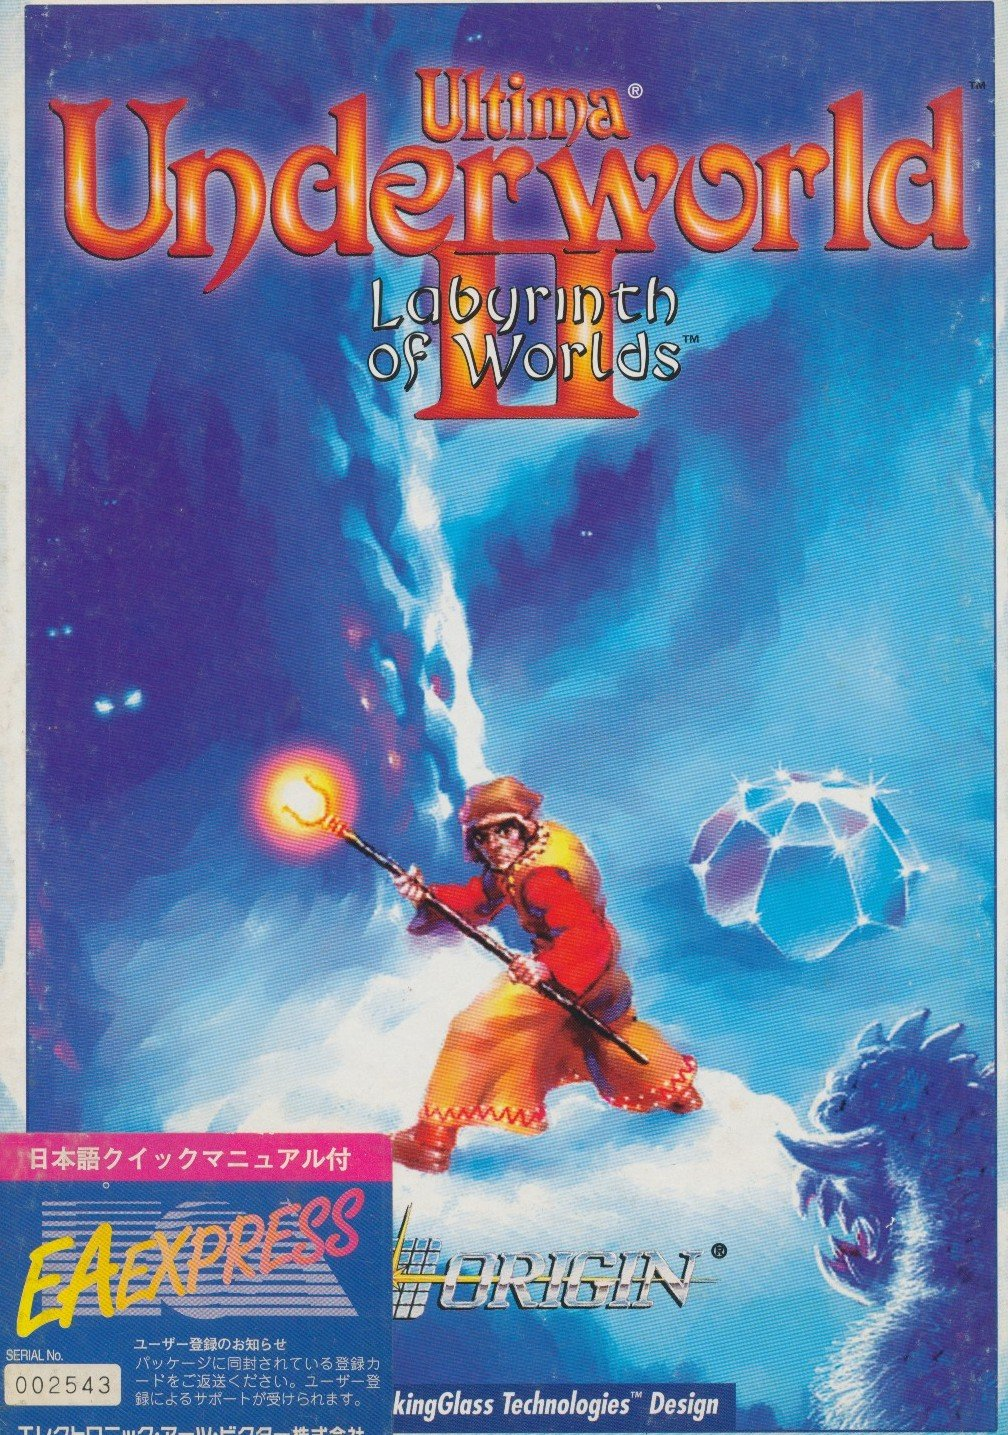 Downloads for ultima underworld i: the stygian abyss bootstrike. Com.